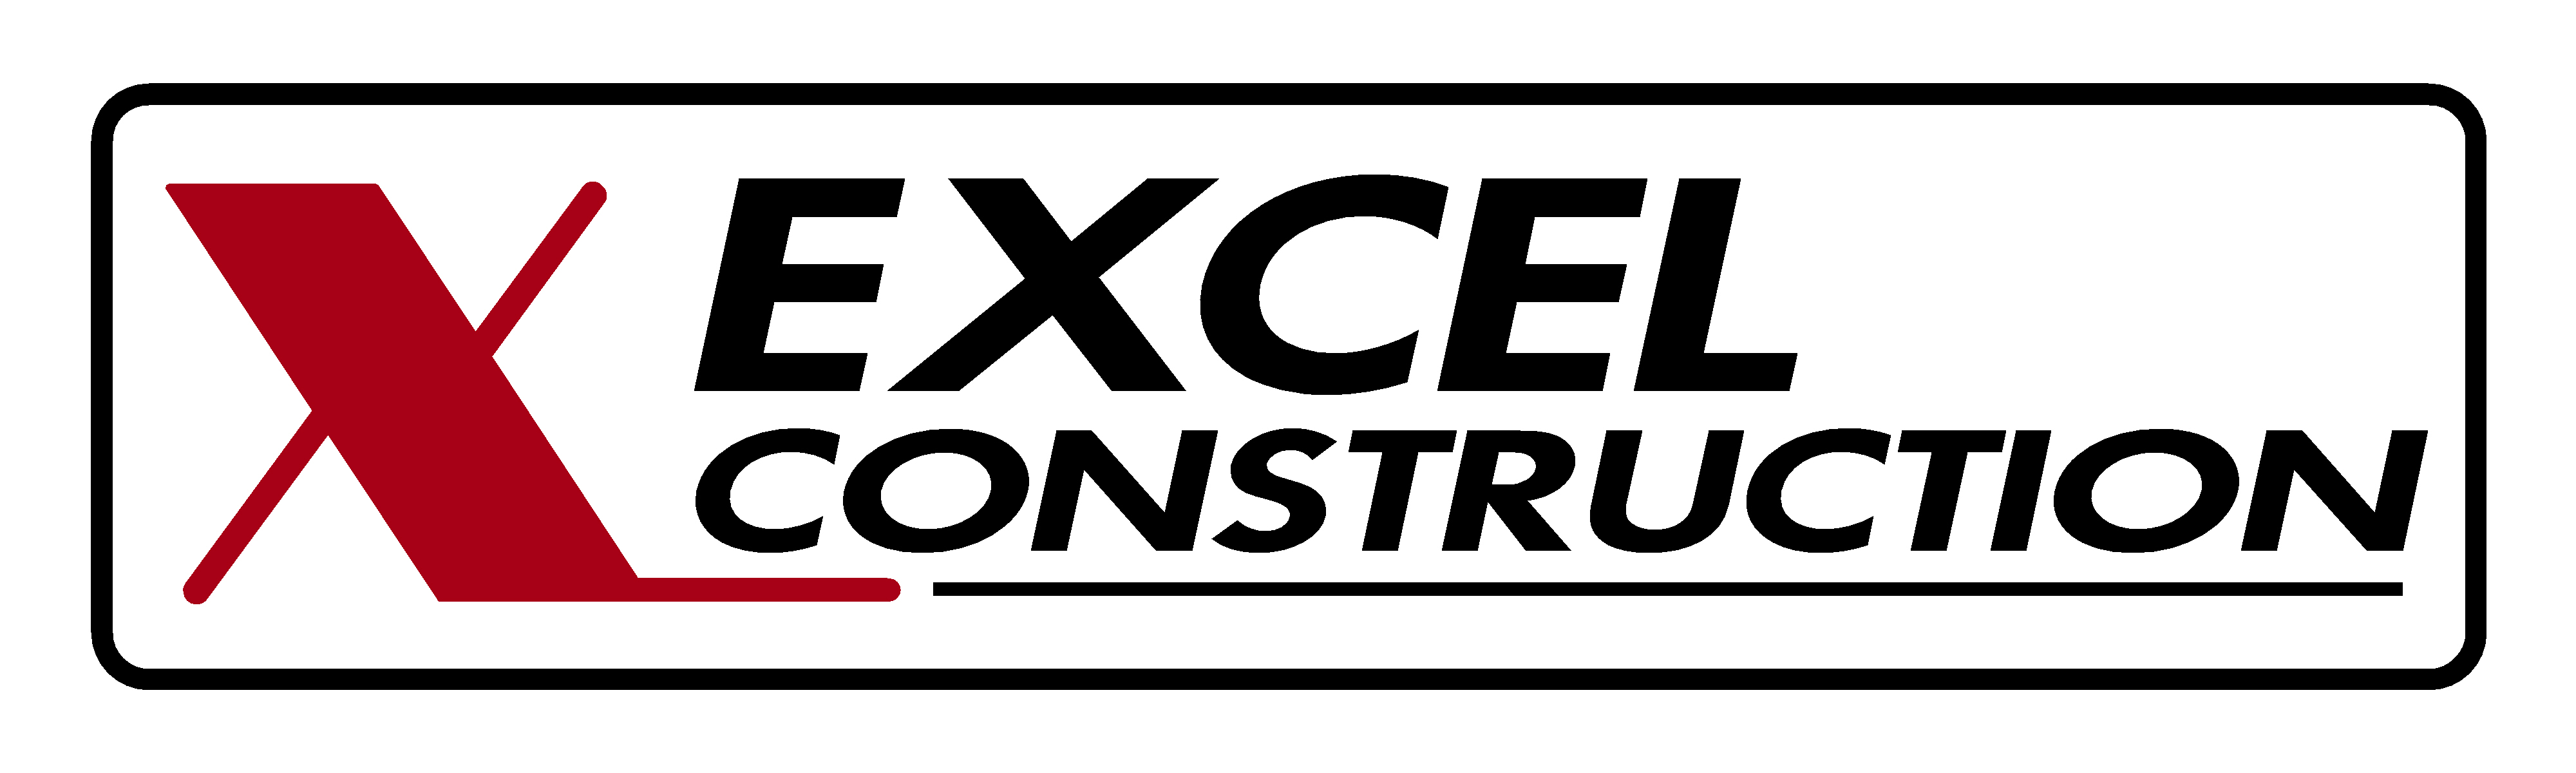 Excel Construction, Anchorage Alaska